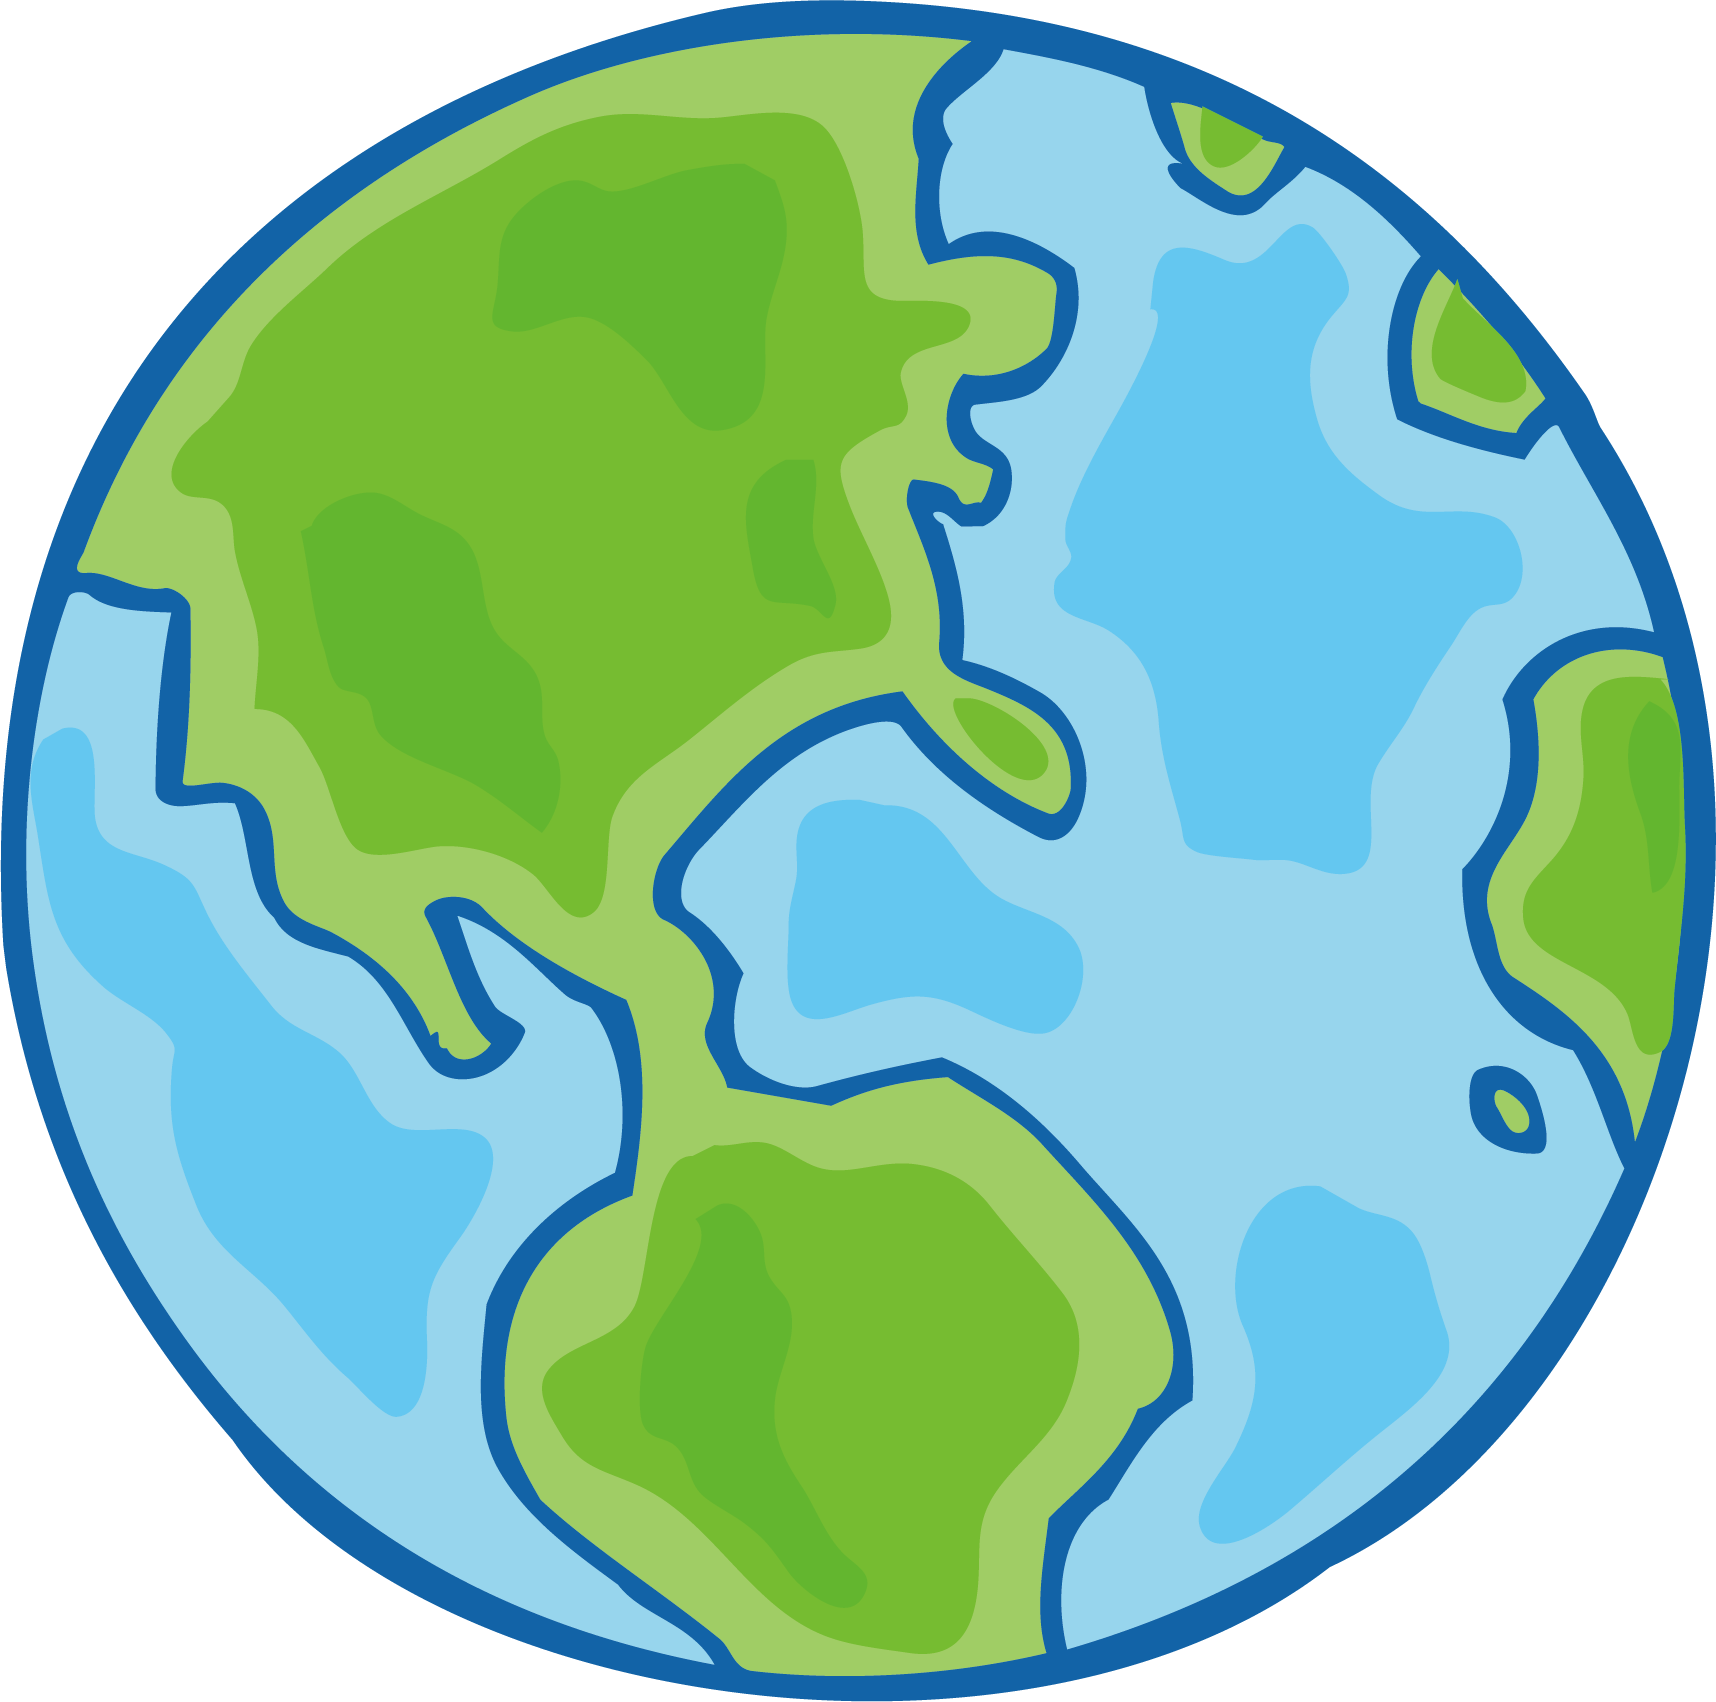 Pictures of earth cartoon clipart images gallery for free download.